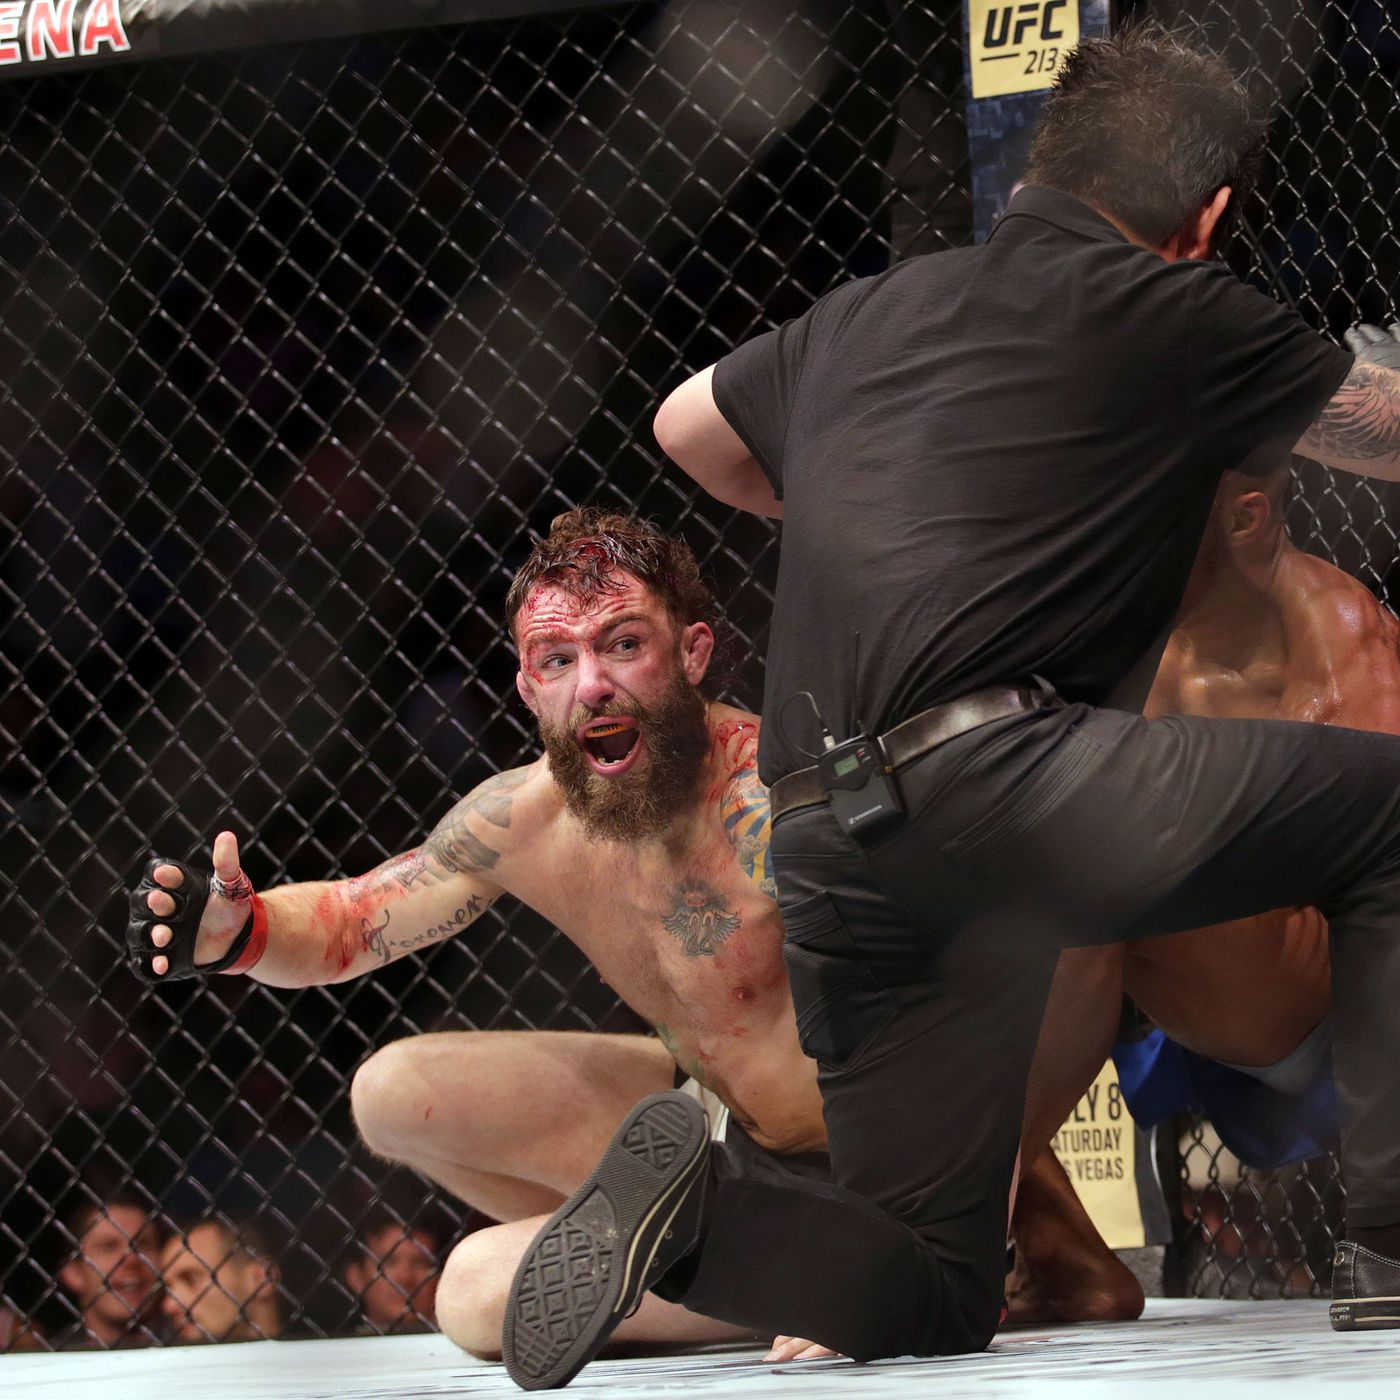 Outraged Michael Chiesa plans to appeal Kevin Lee loss, says Mario Yamasaki  'should never officiate ever again' - MMA Fighting